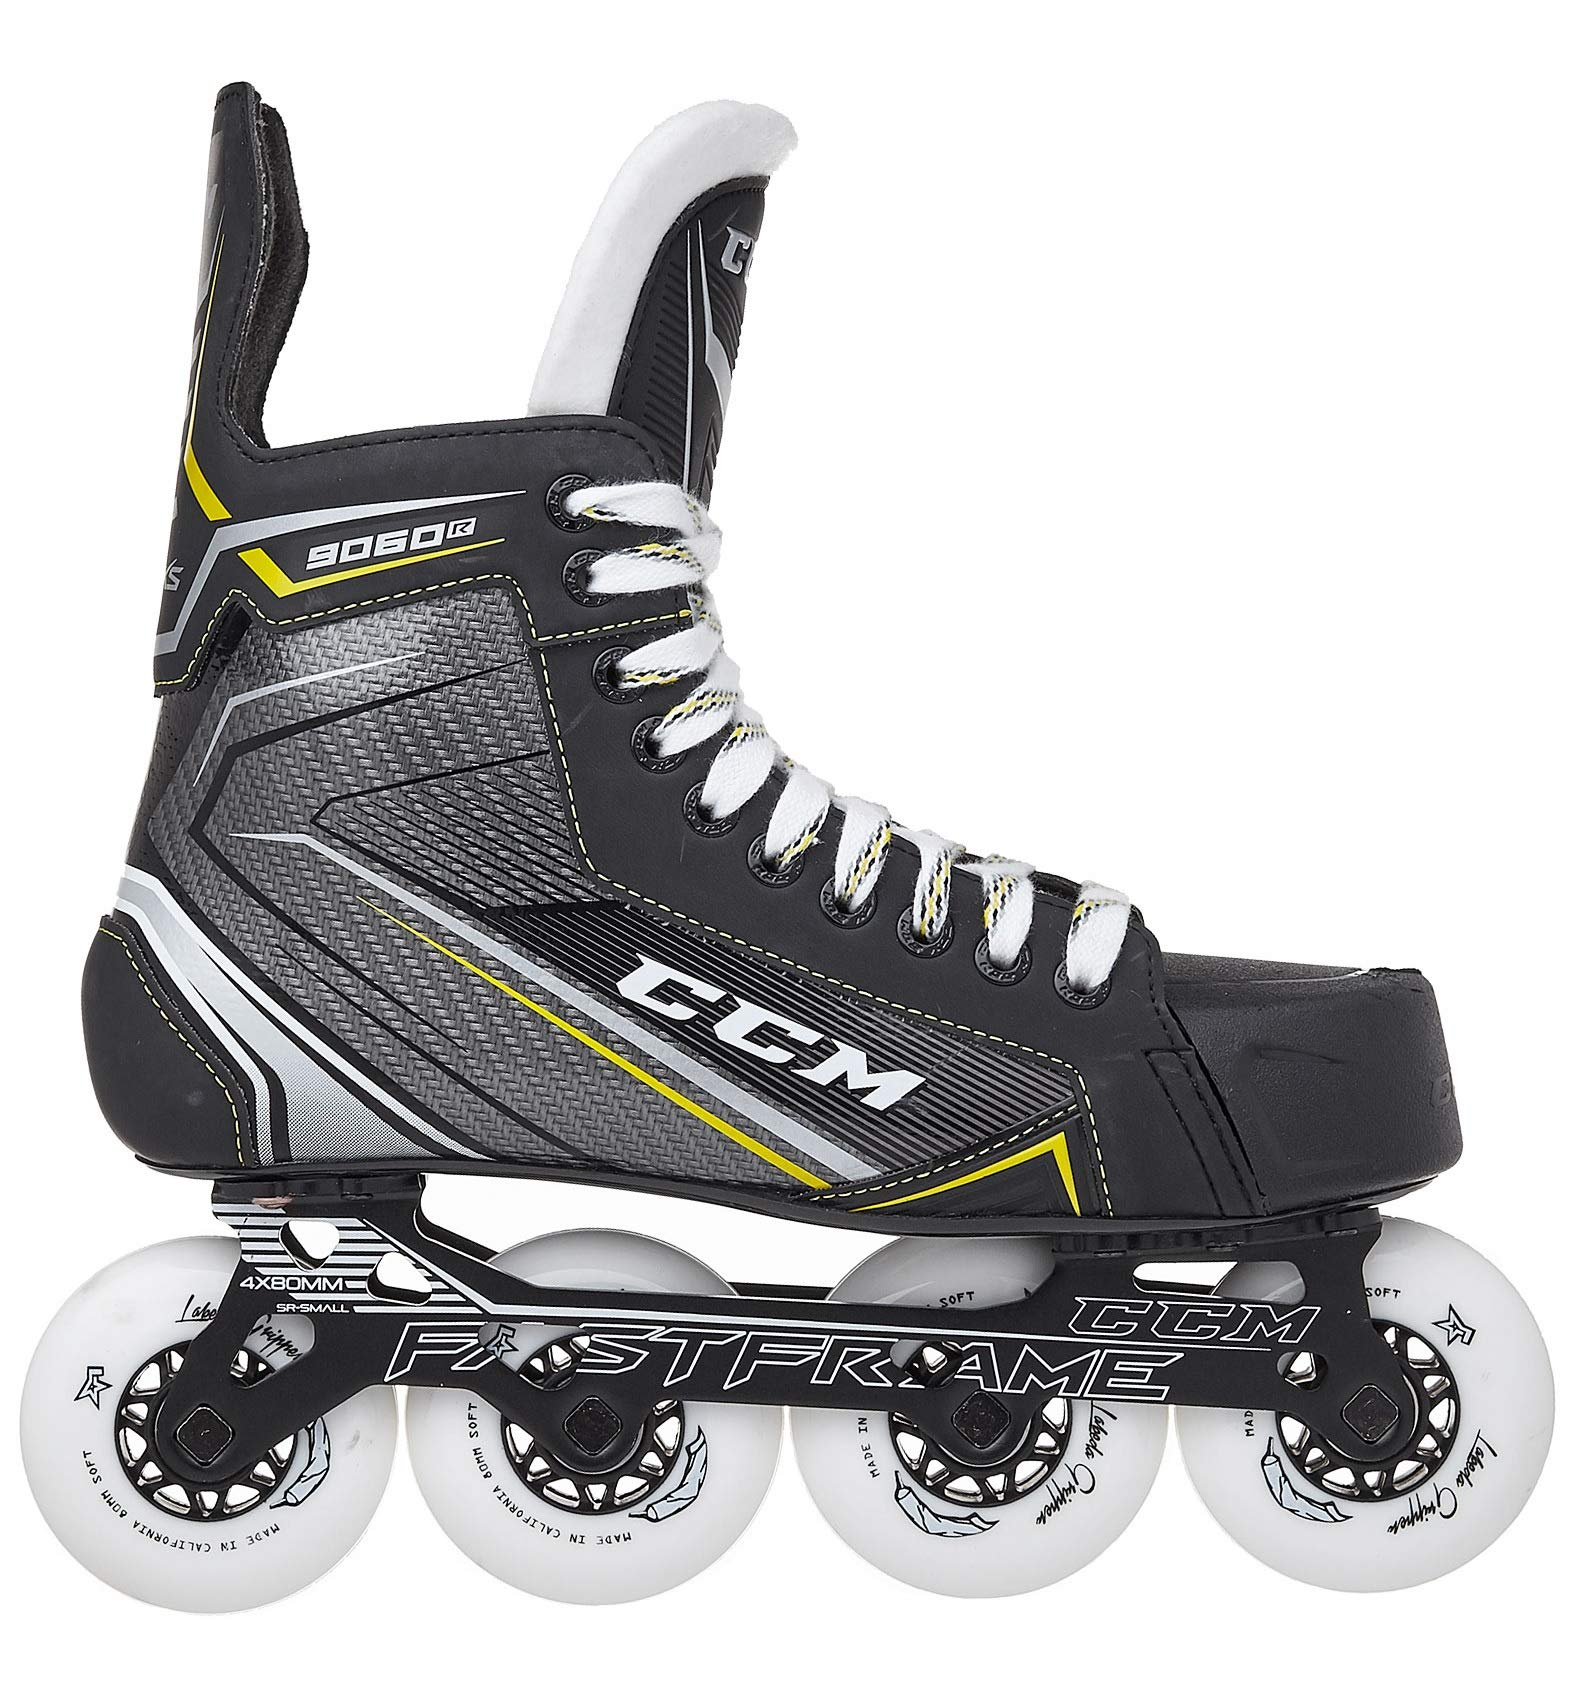 CCM Unisex RH9060 Player Skates